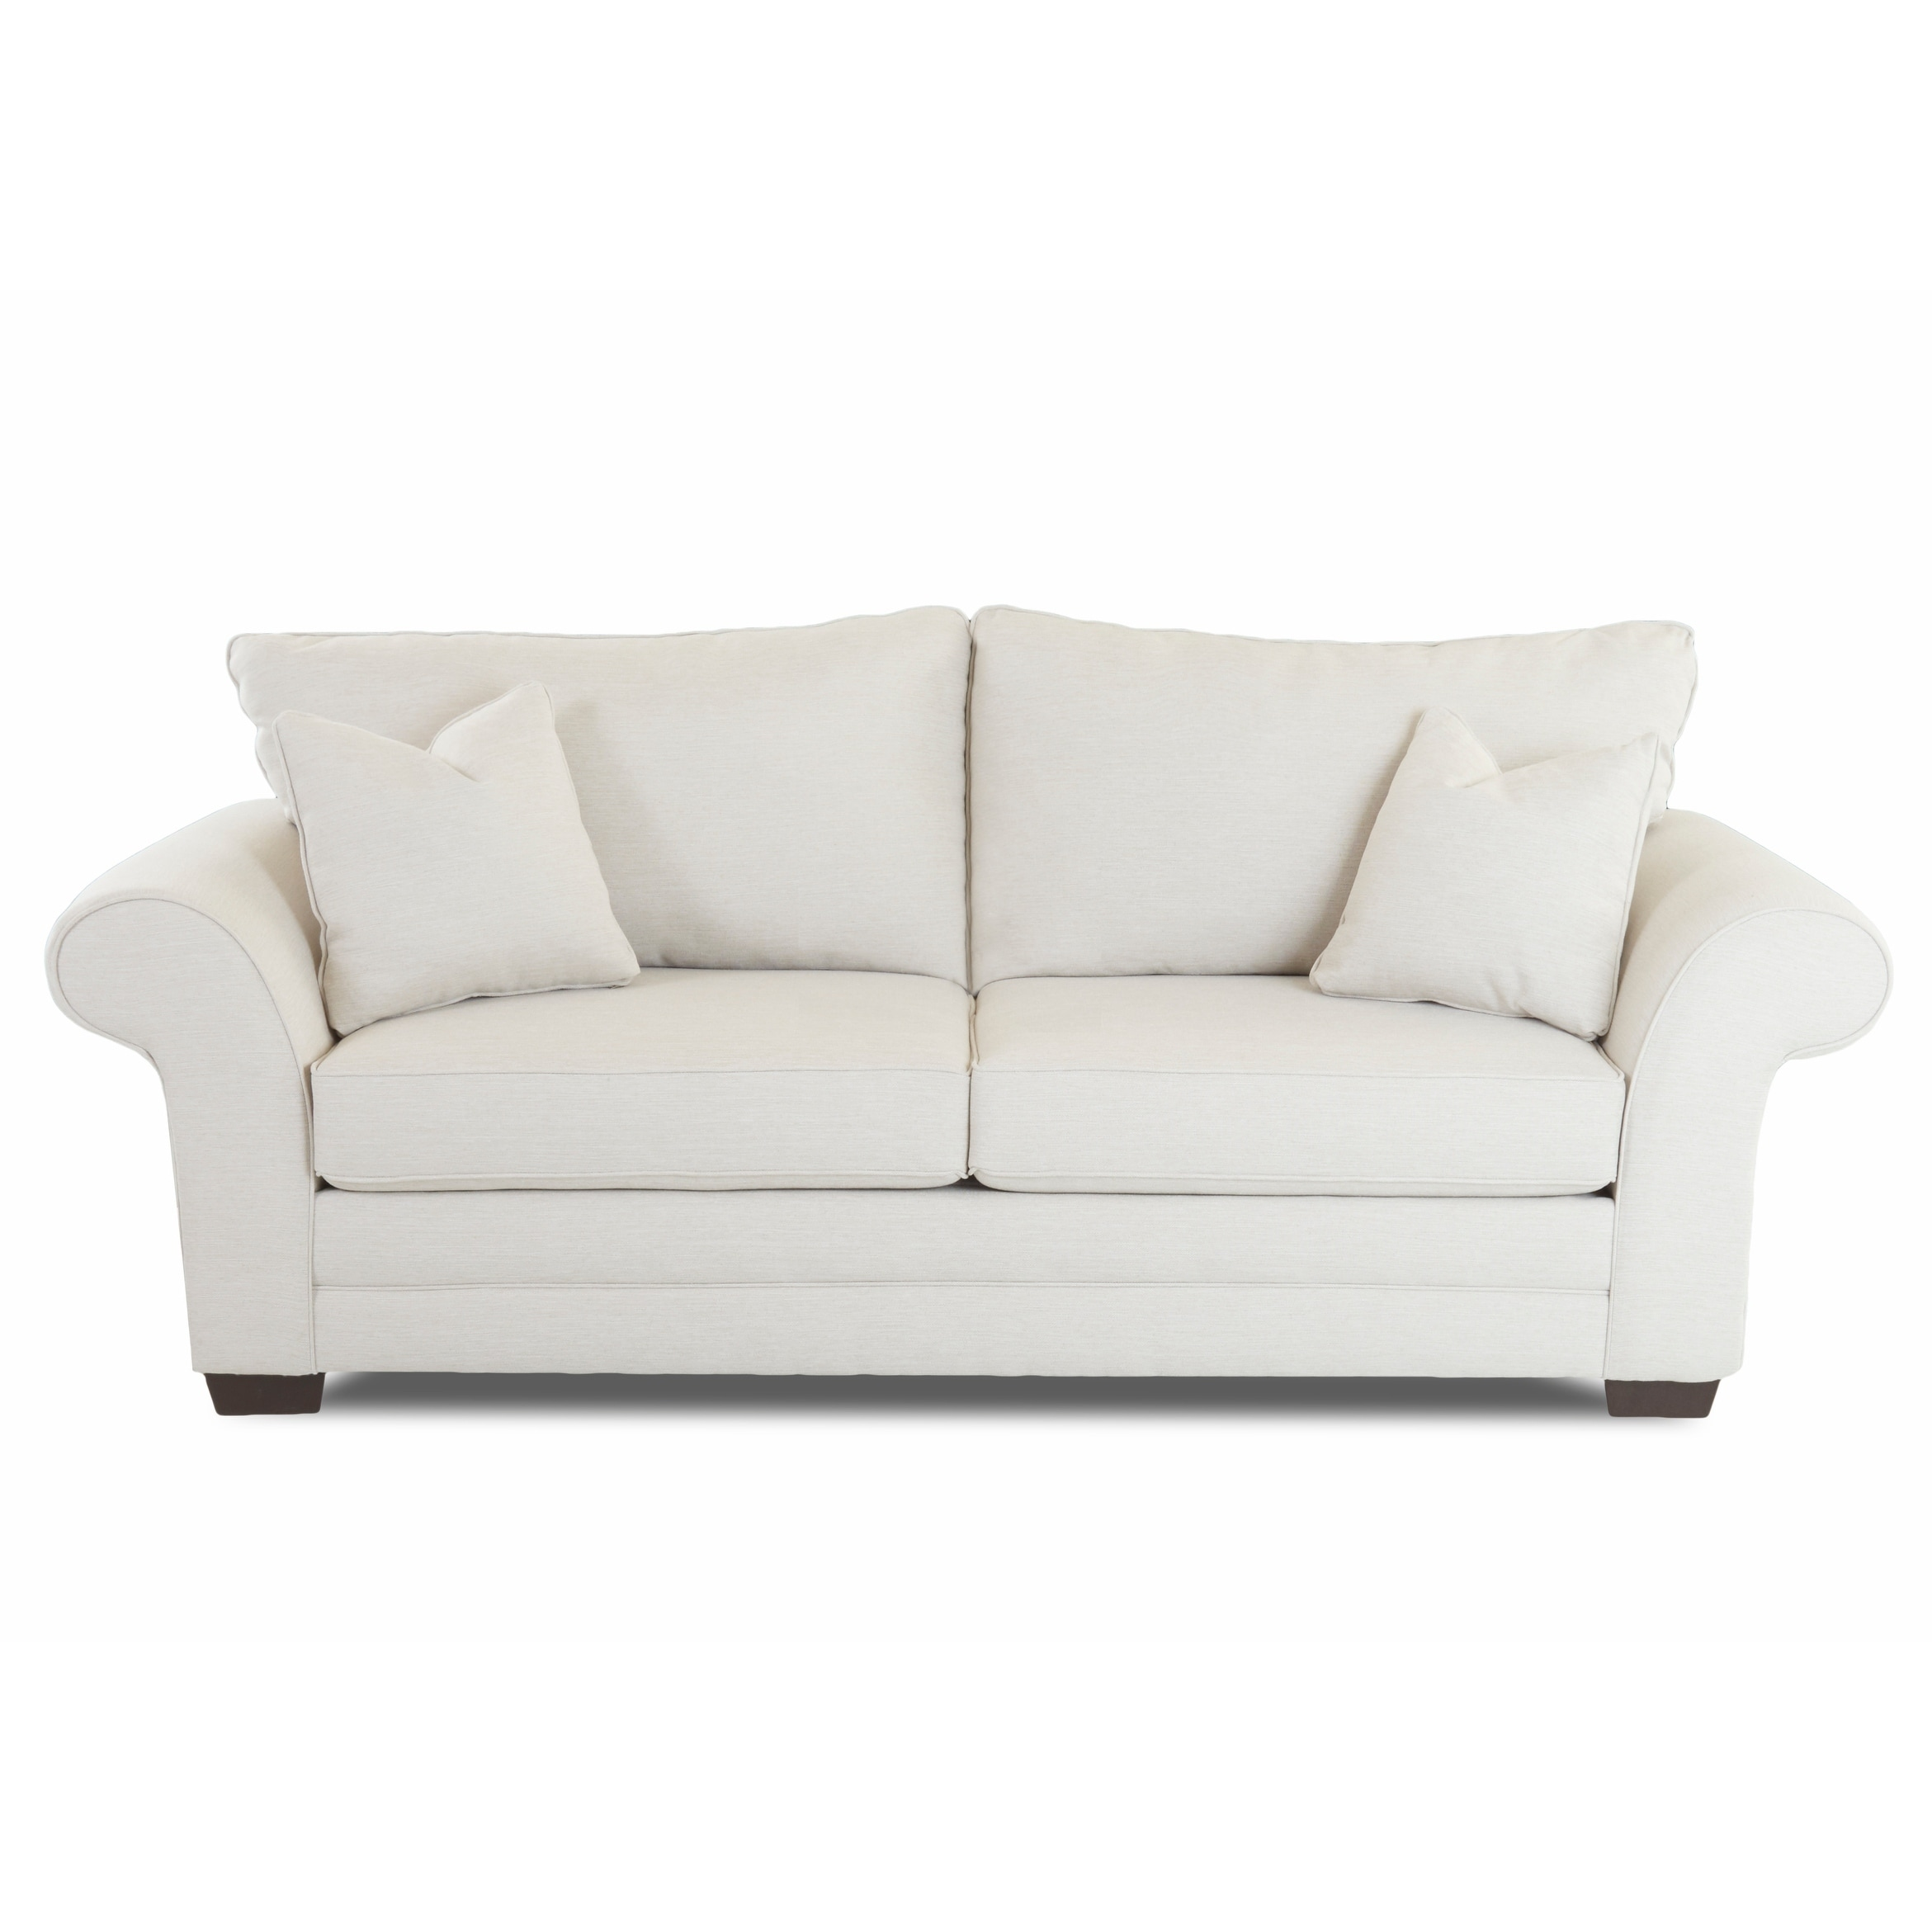 Shop Klaussner Holly Plush Sofa   Free Shipping Today   Overstock.com    18025120